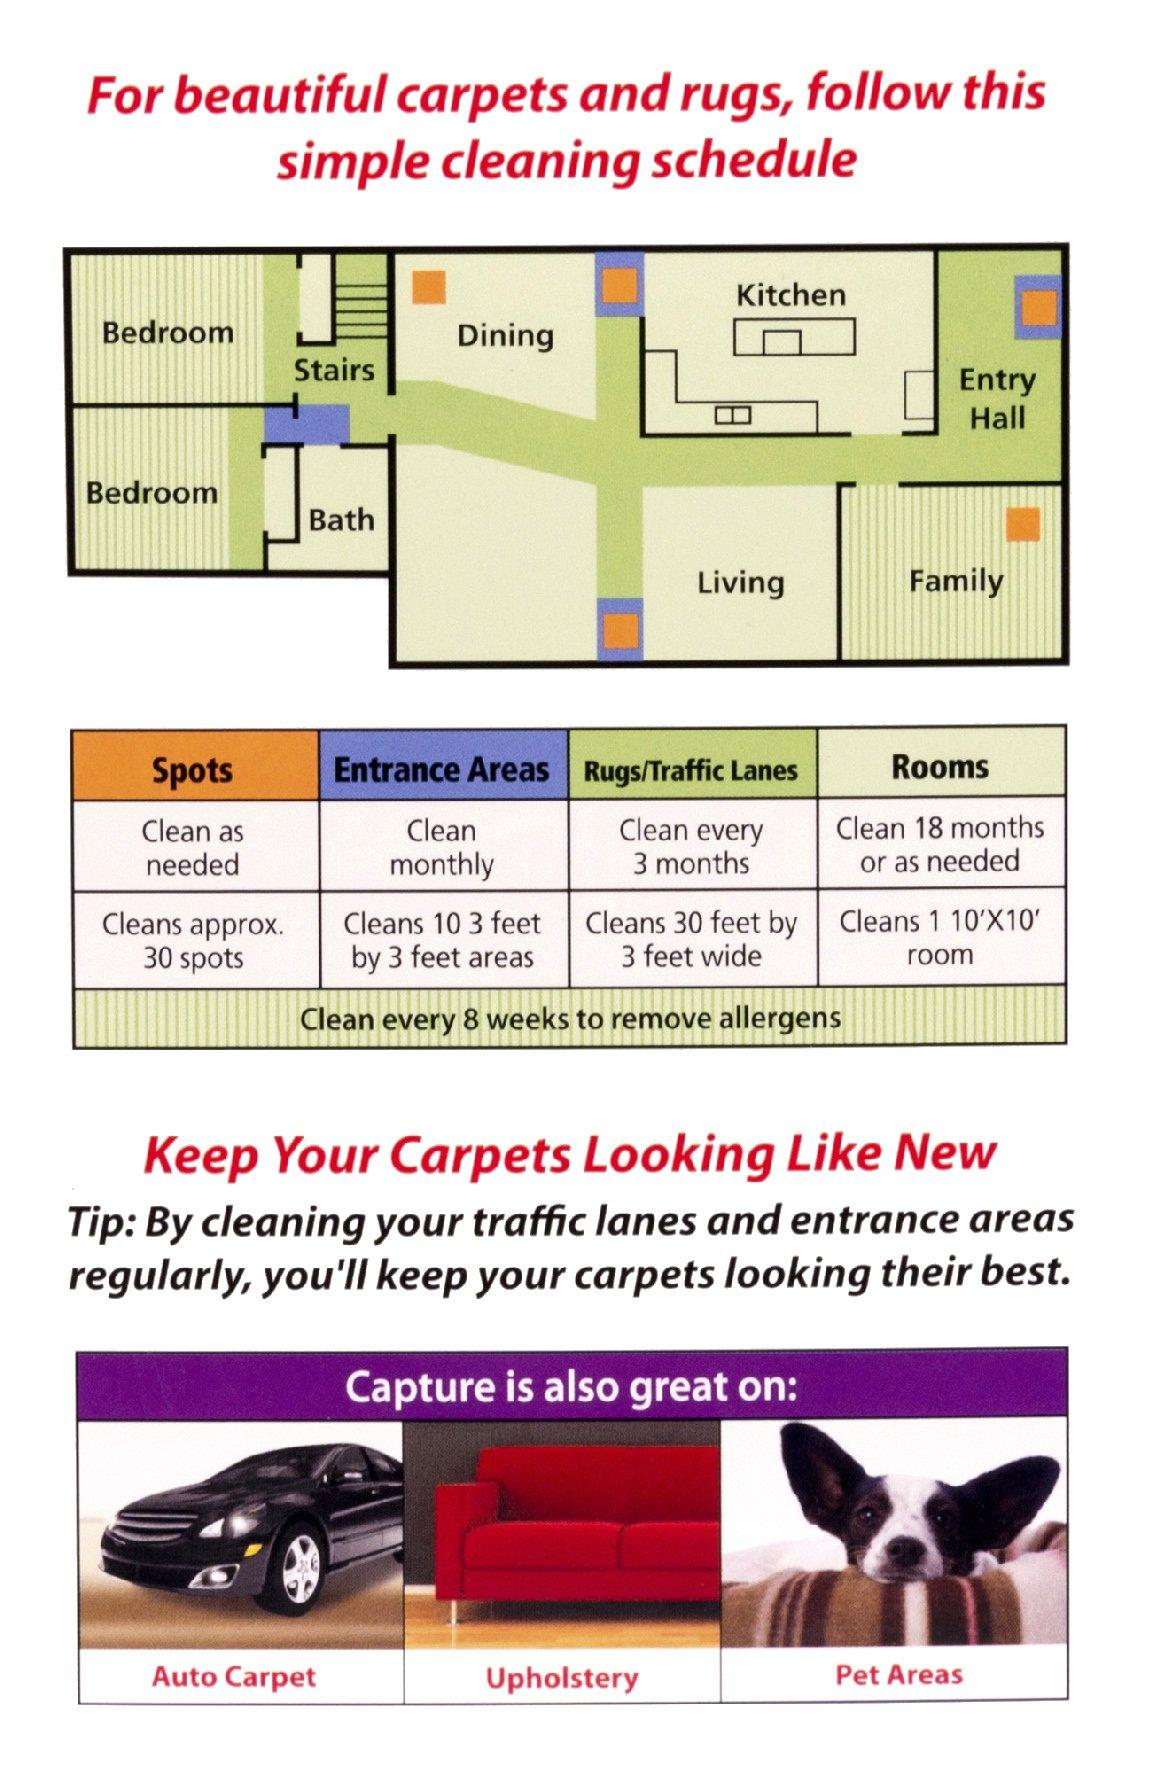 Capture-Carpet-Dry-Cleaner-Powder-4-Pound-Resolve-Allergens-Stain-Smell thumbnail 2